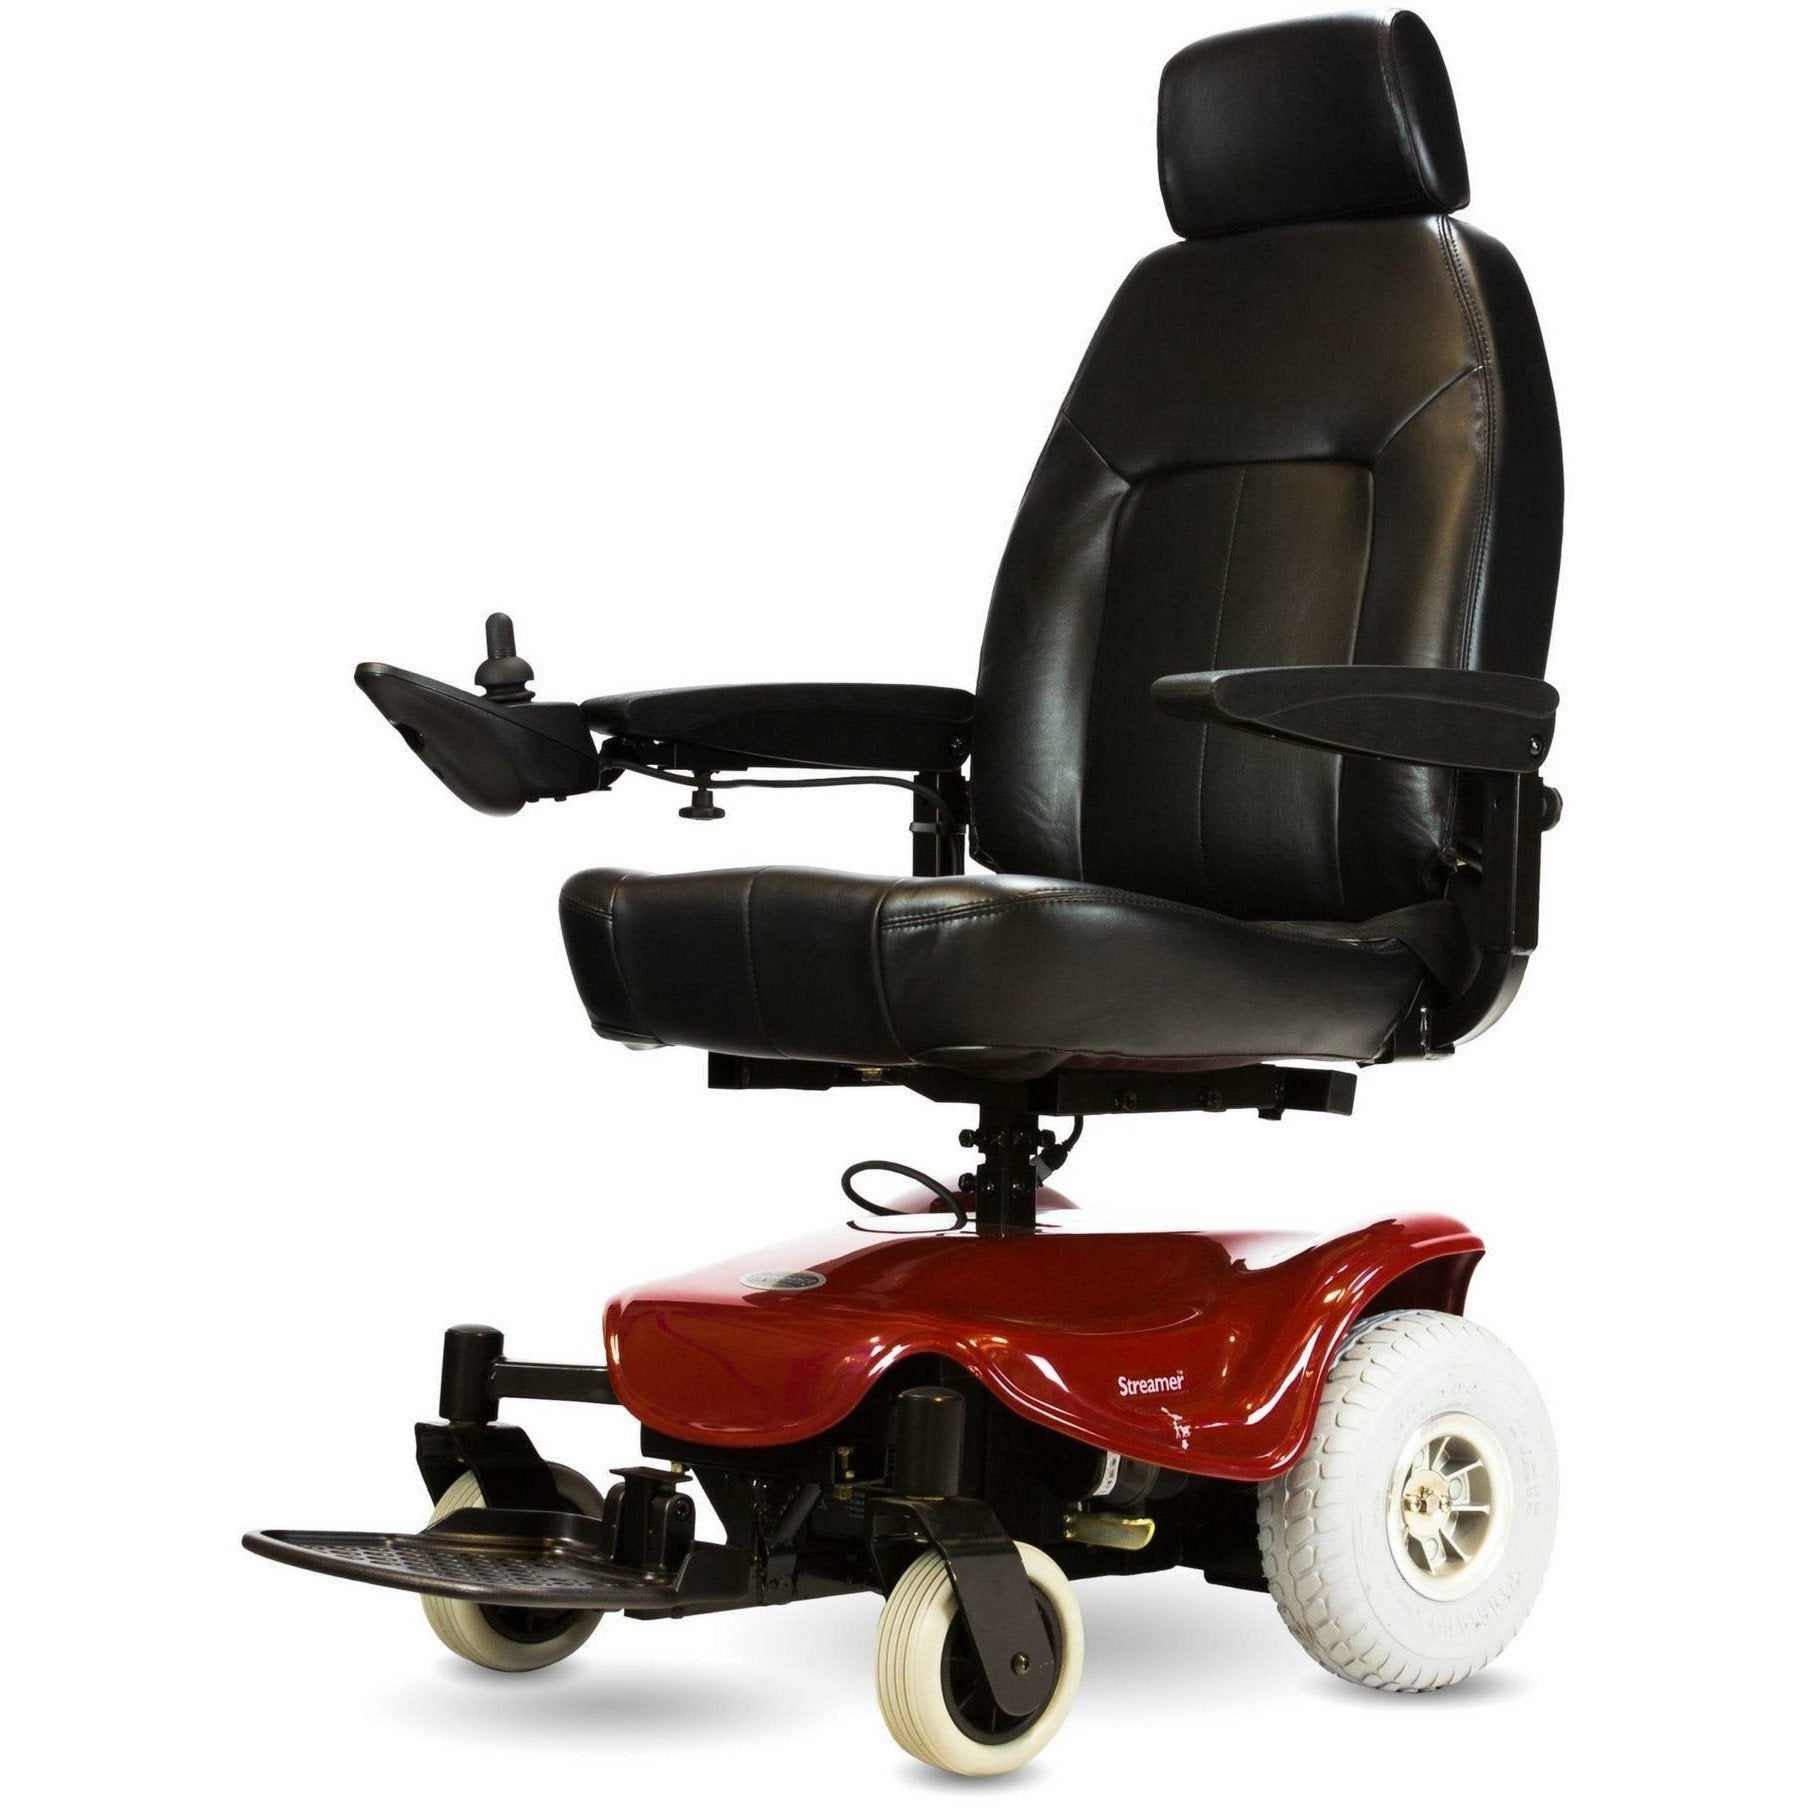 Shoprider Streamer 888WA Power Wheelchair – Reliving Mobility